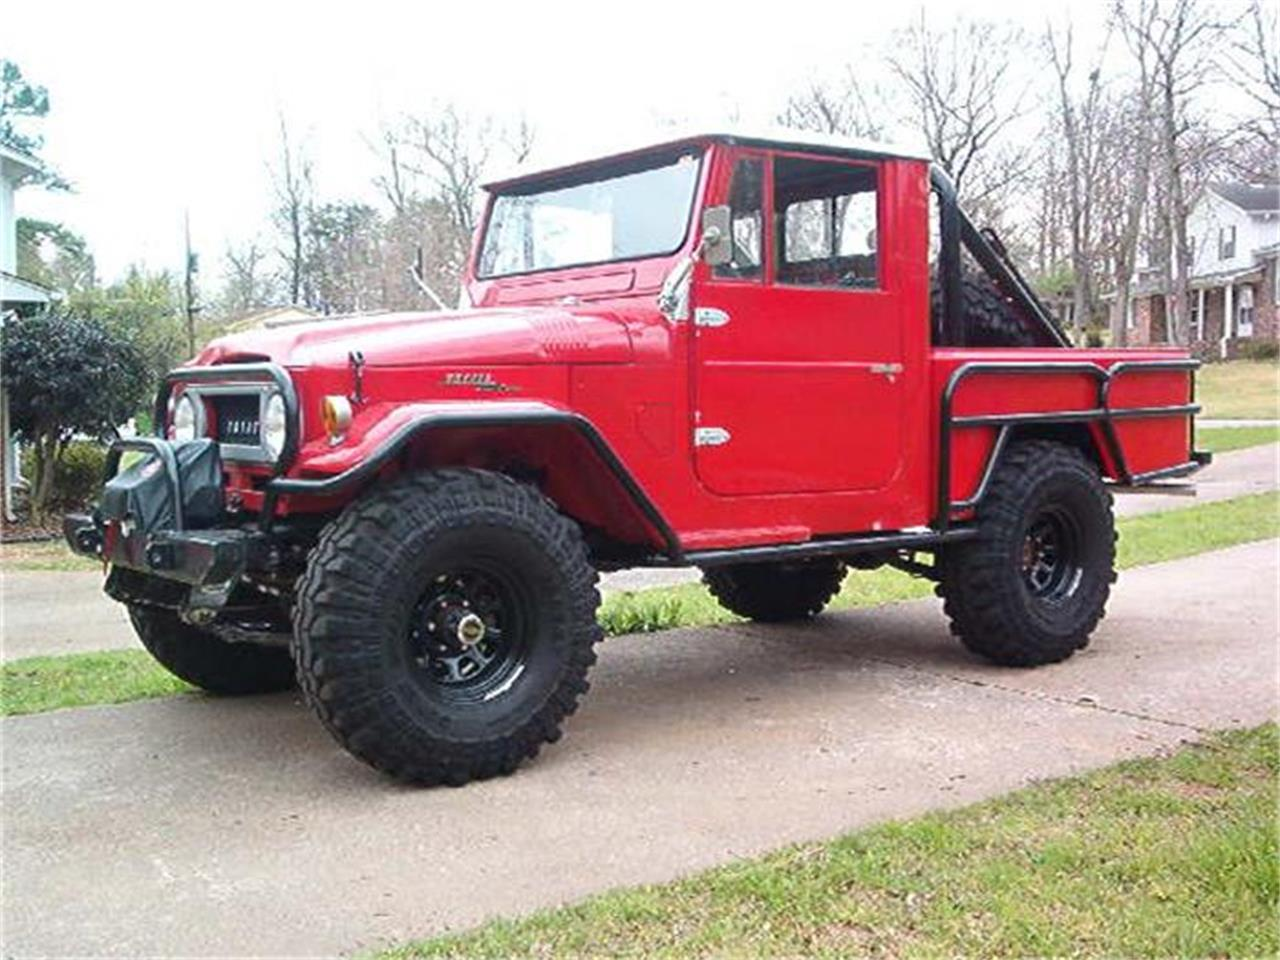 For Sale: 1965 Toyota Land Cruiser FJ45 in Birmingham, Alabama